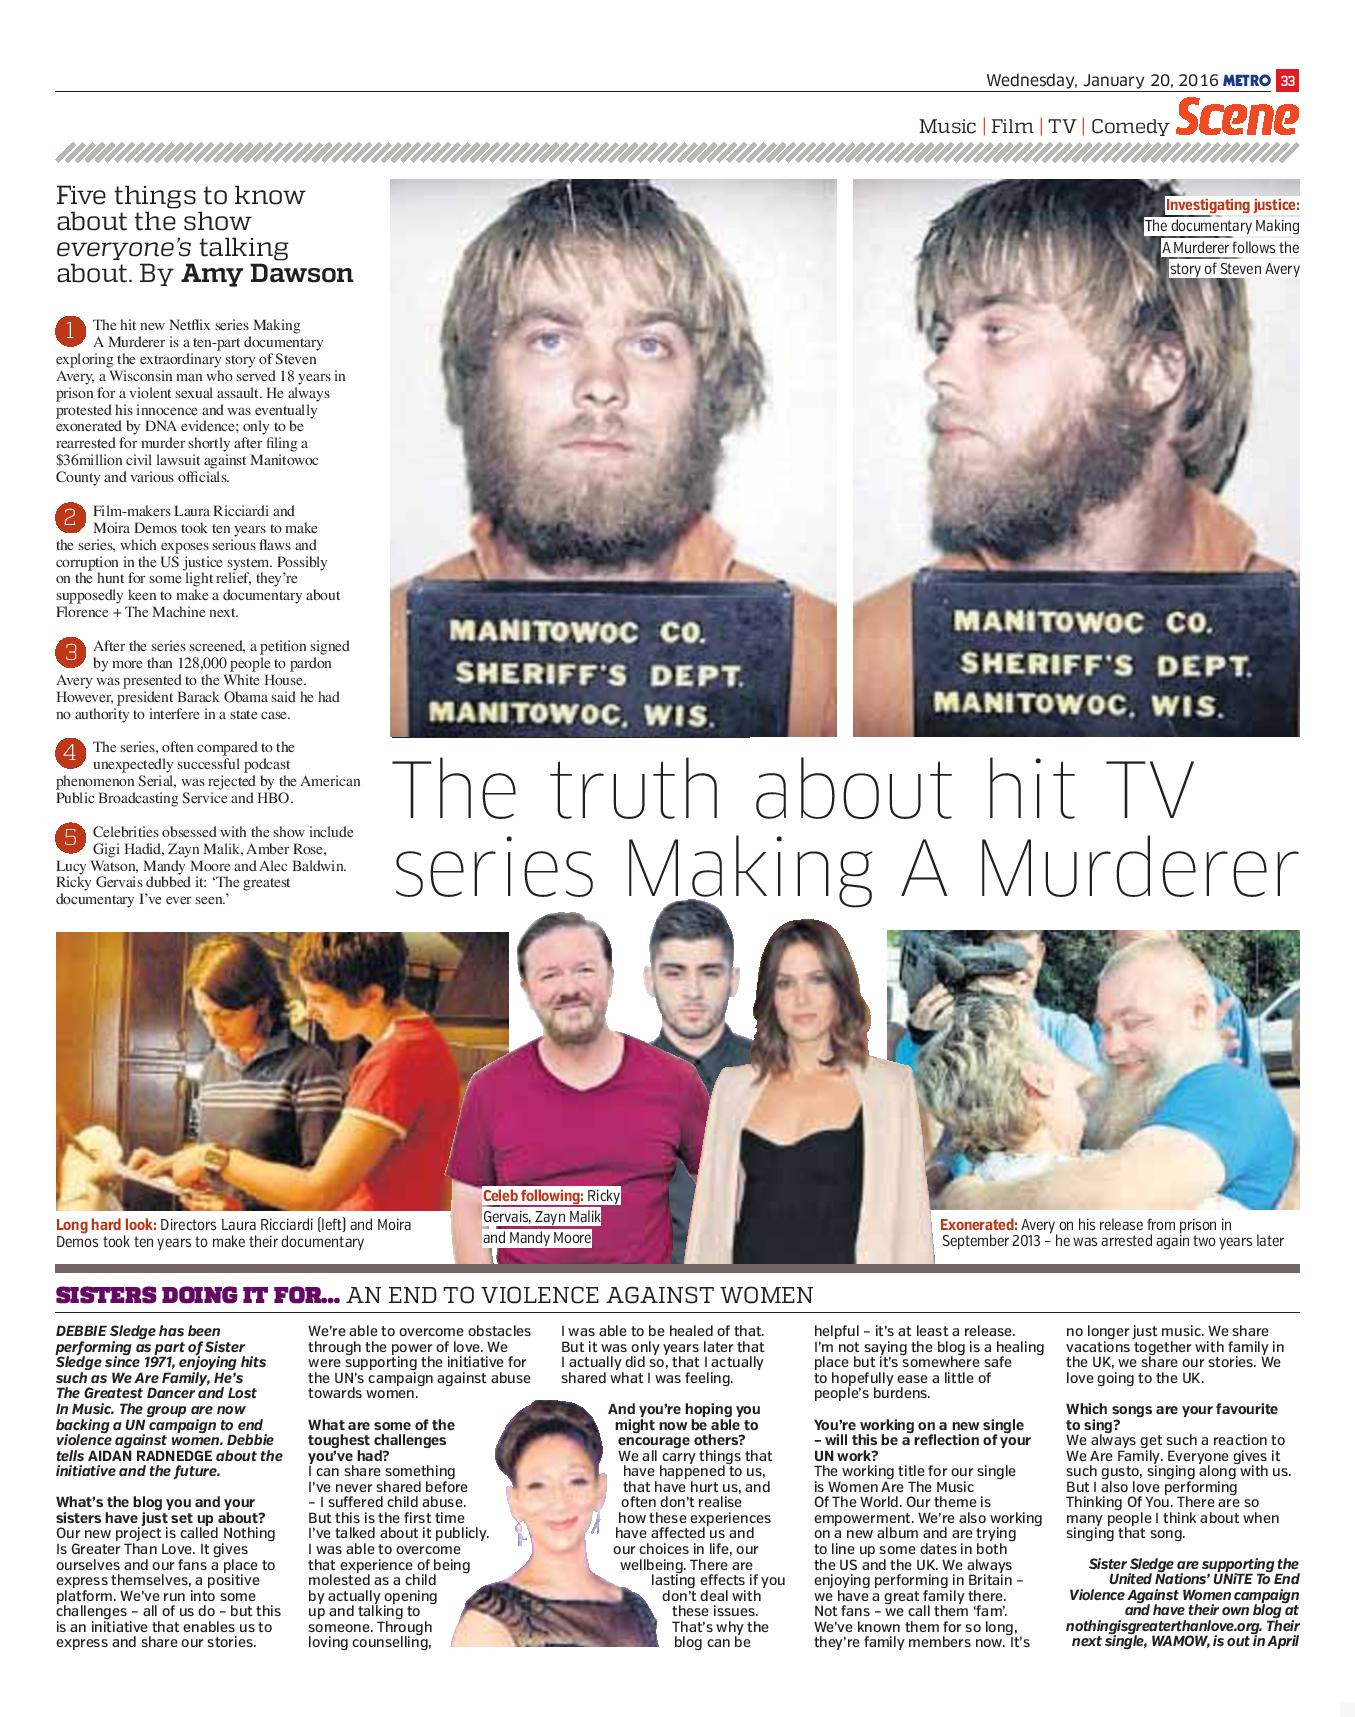 The truth about hit TV series Making A Murderer (Metro, 20th Jan 2016)